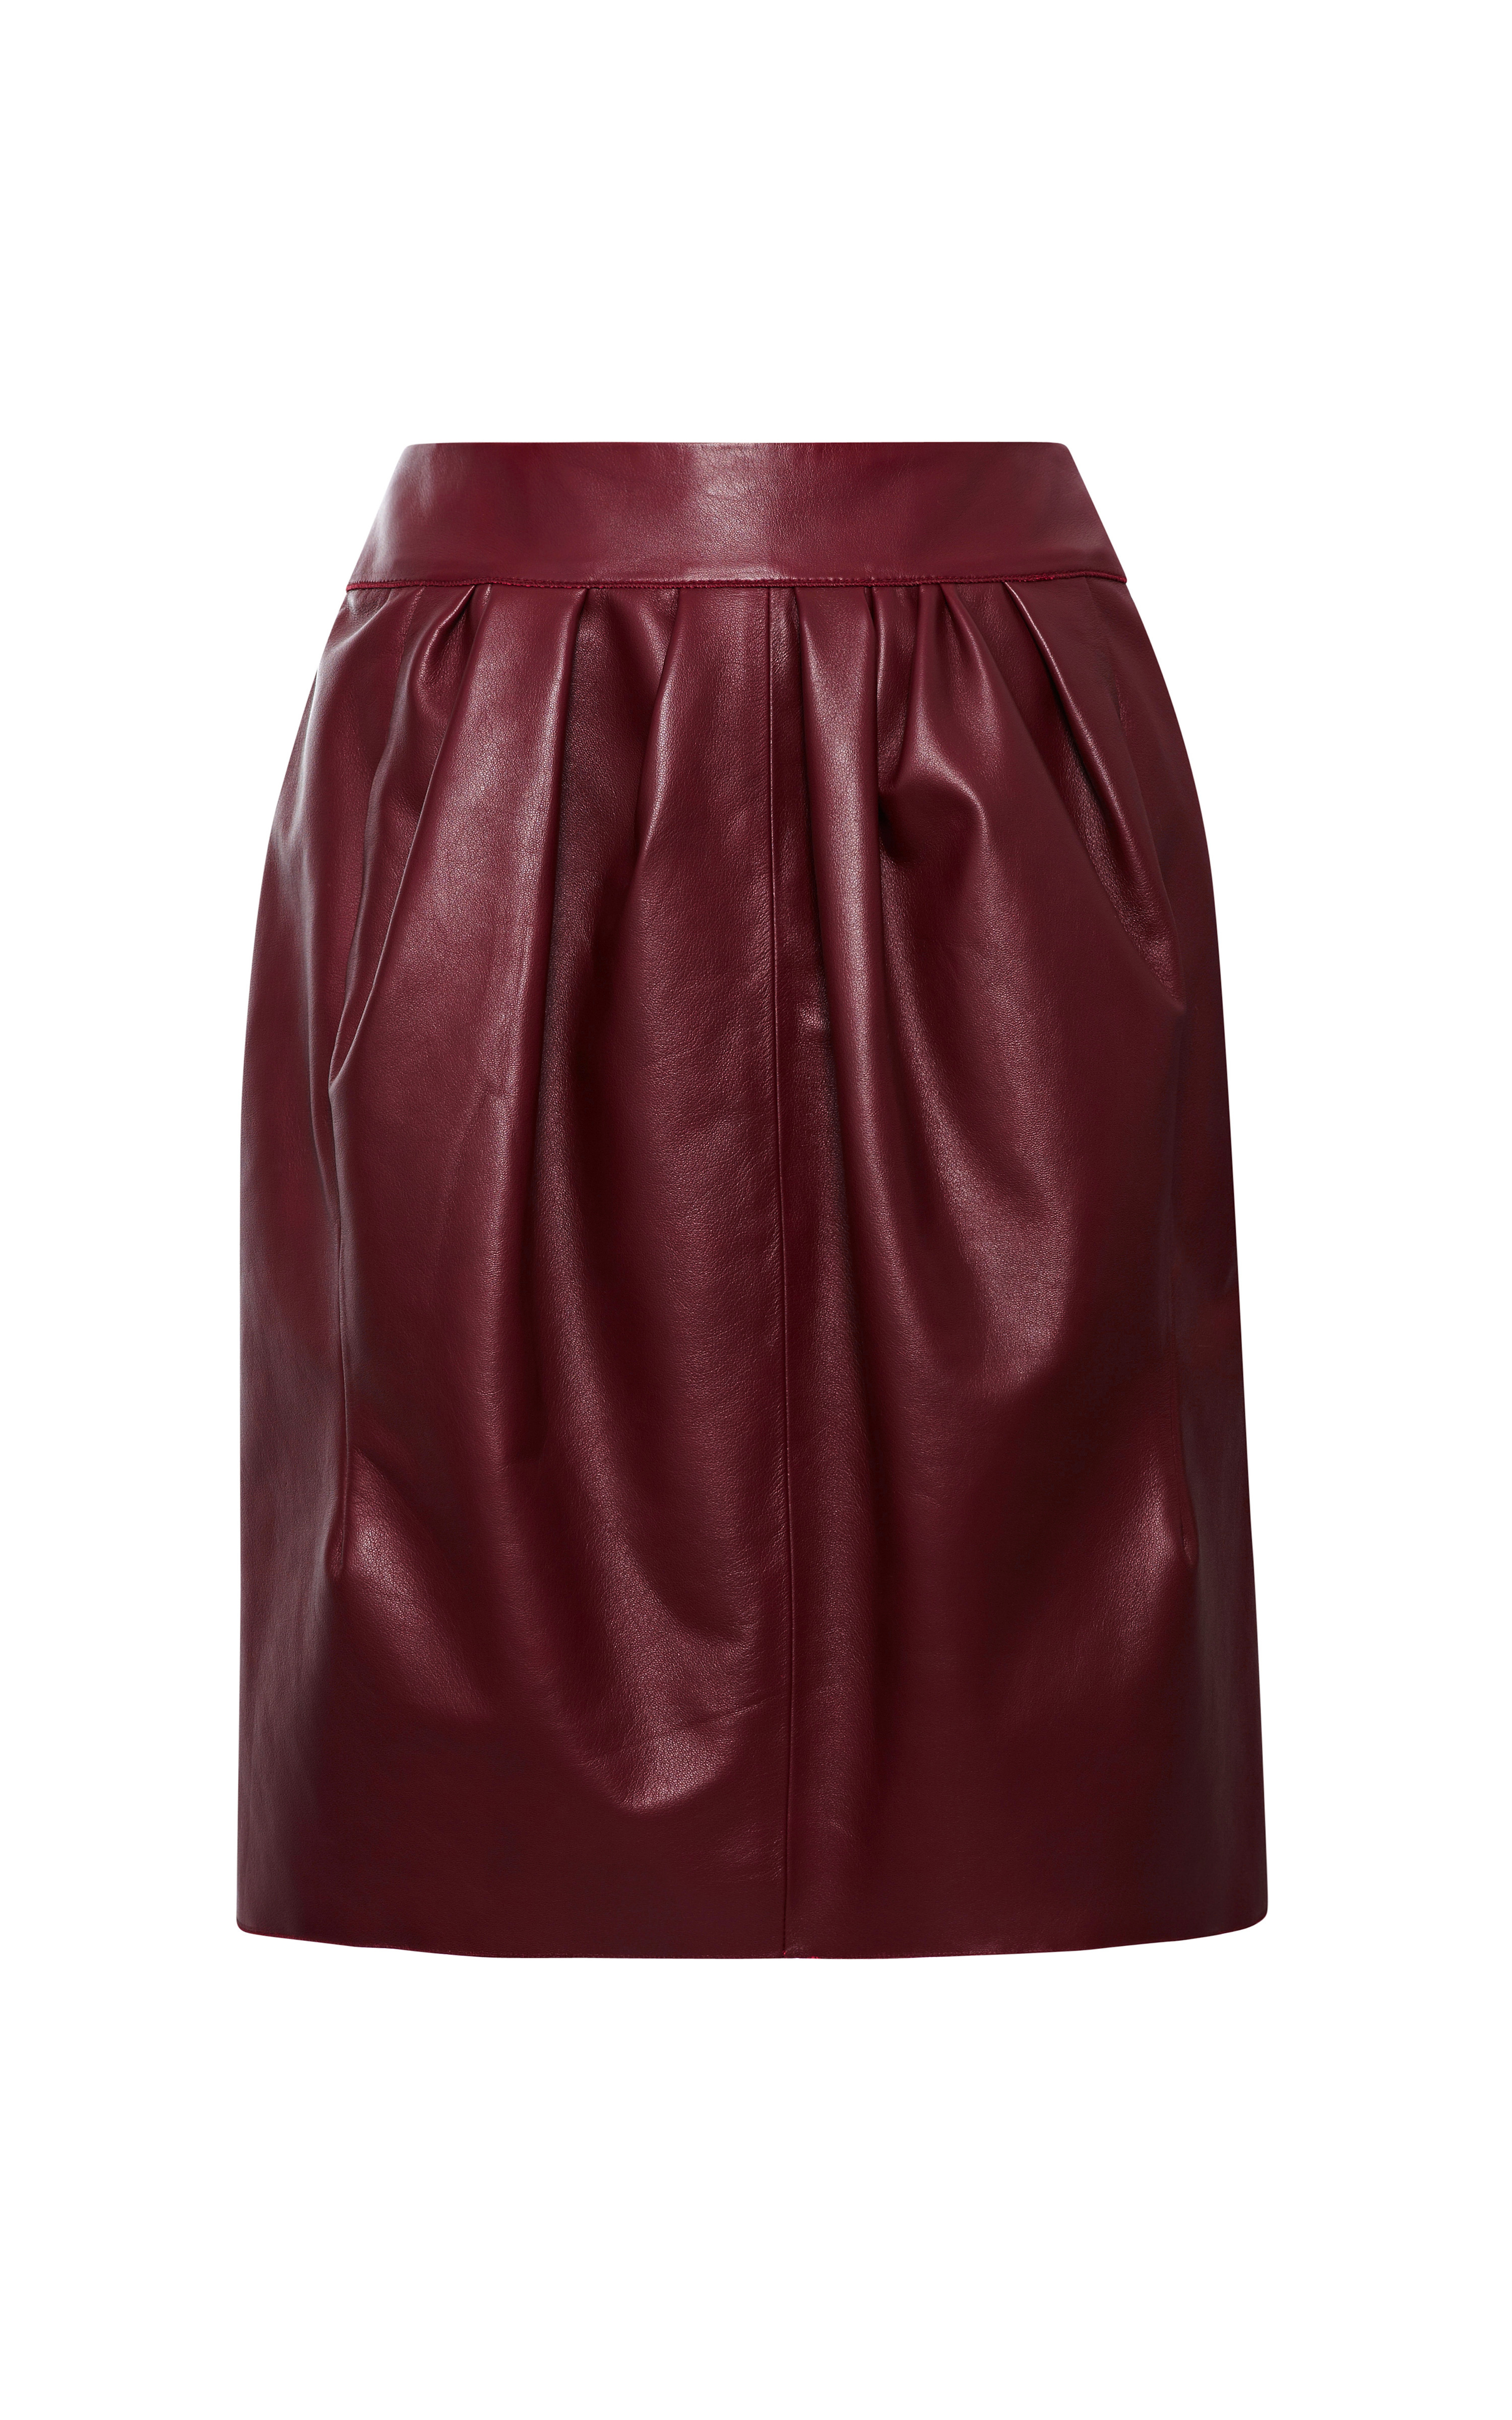 ricci leather skirt in bordeaux fonce lyst